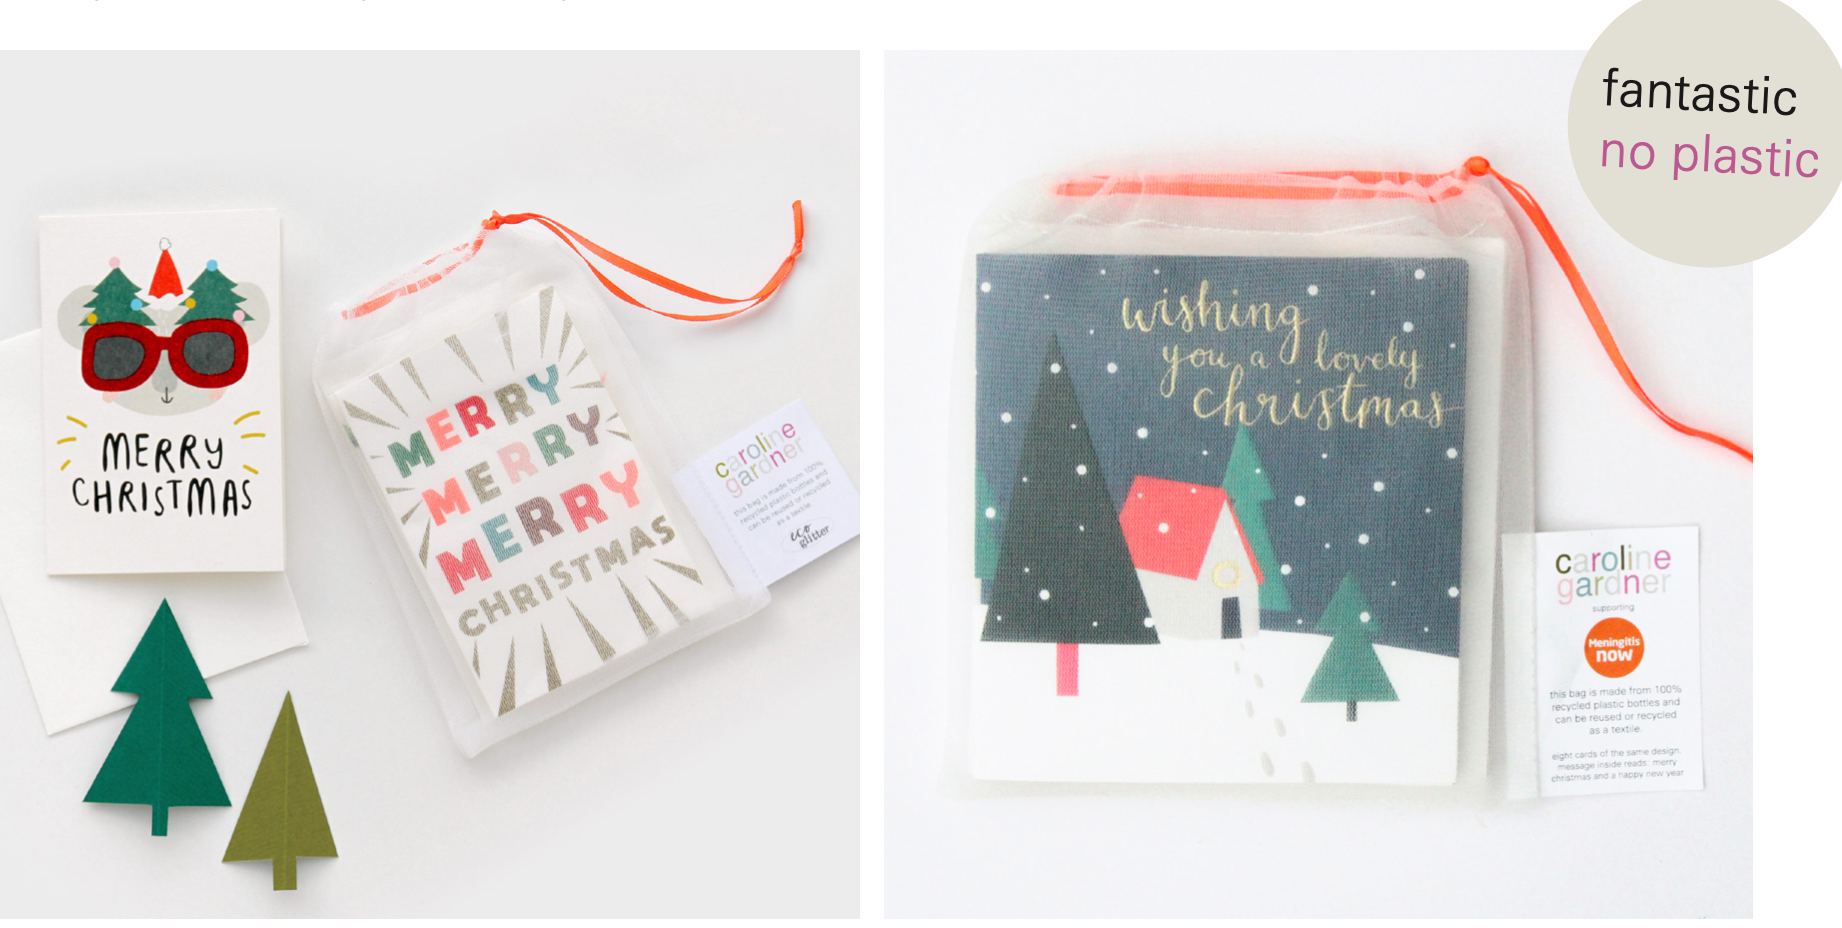 Above: One of the products Caroline Gardner is sharing in its virtual showroom and on a video presentation is its new eco-pouched Christmas cards. The introduction of these bags (made from recycled bottles) are expected to see over 10,000 plastic bottles being recycled this Christmas.